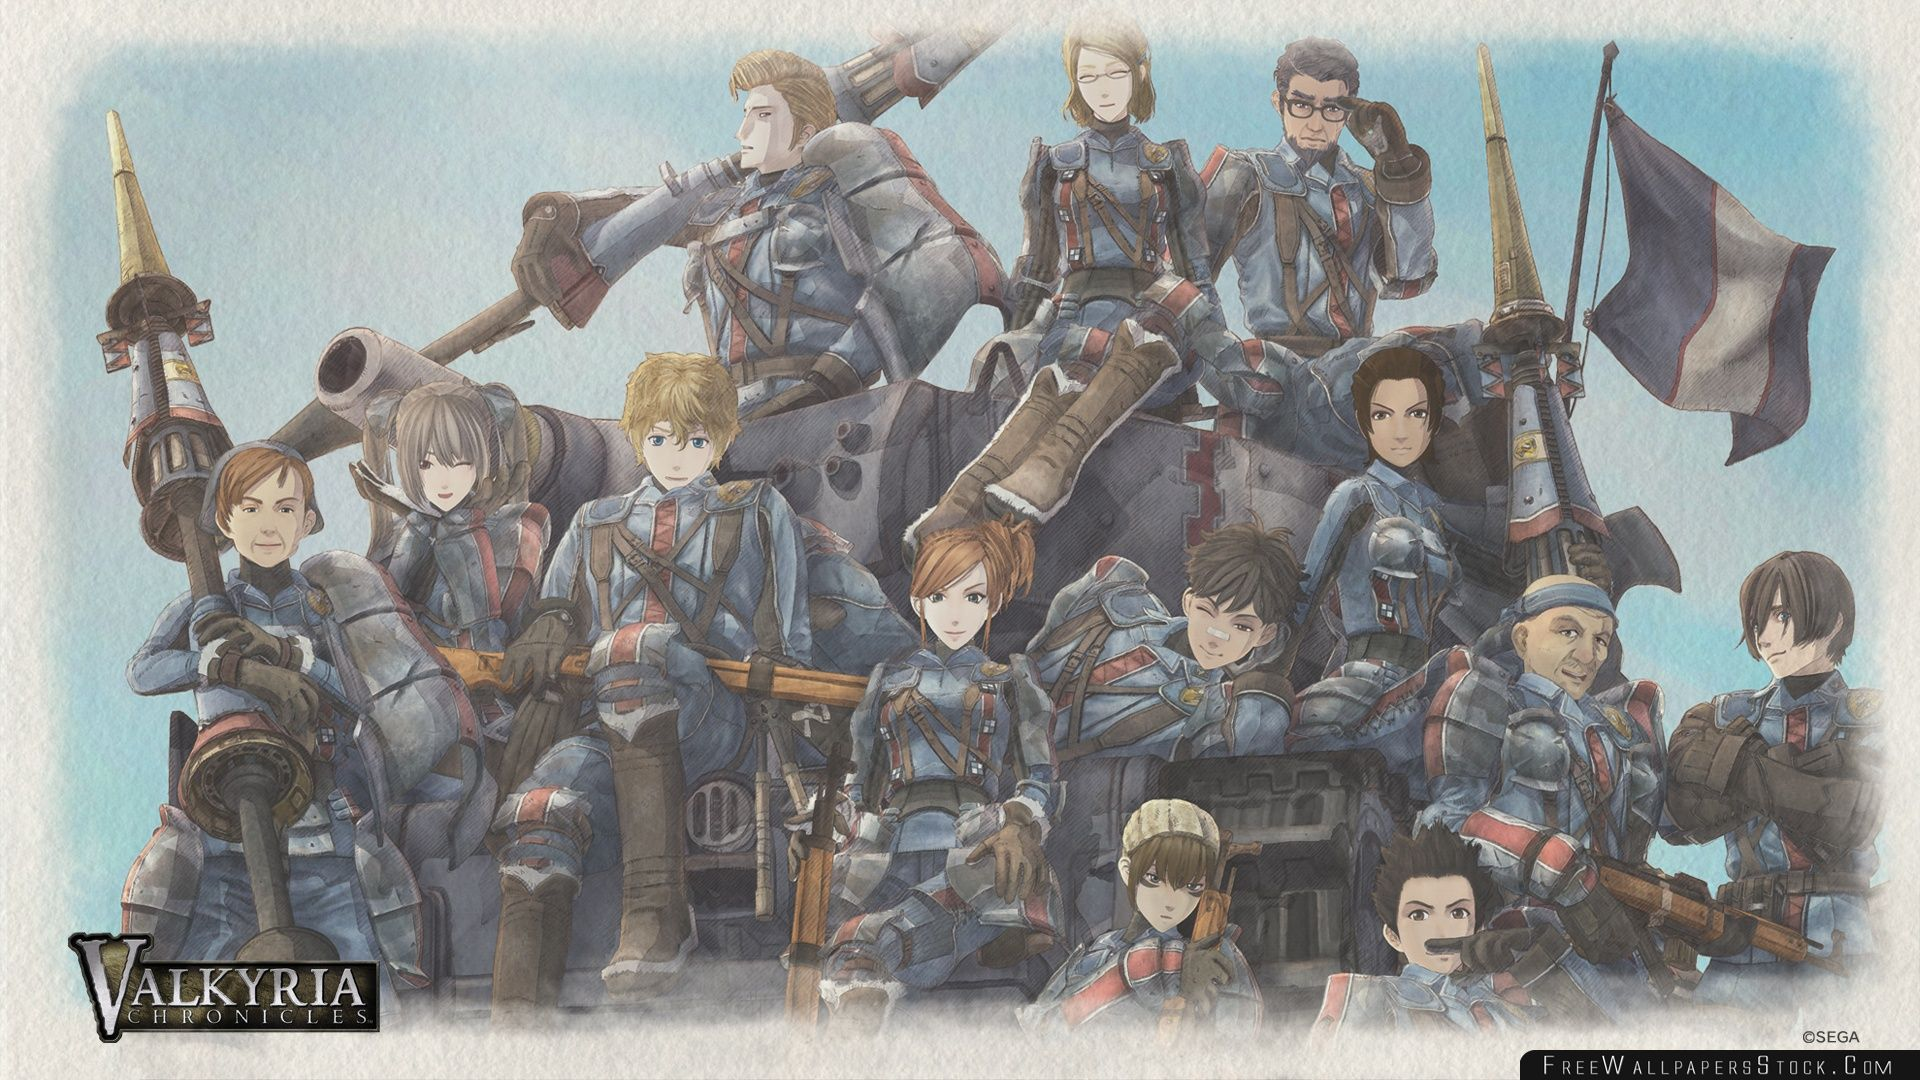 Download Free Wallpaper Valkyria Chronicles Game